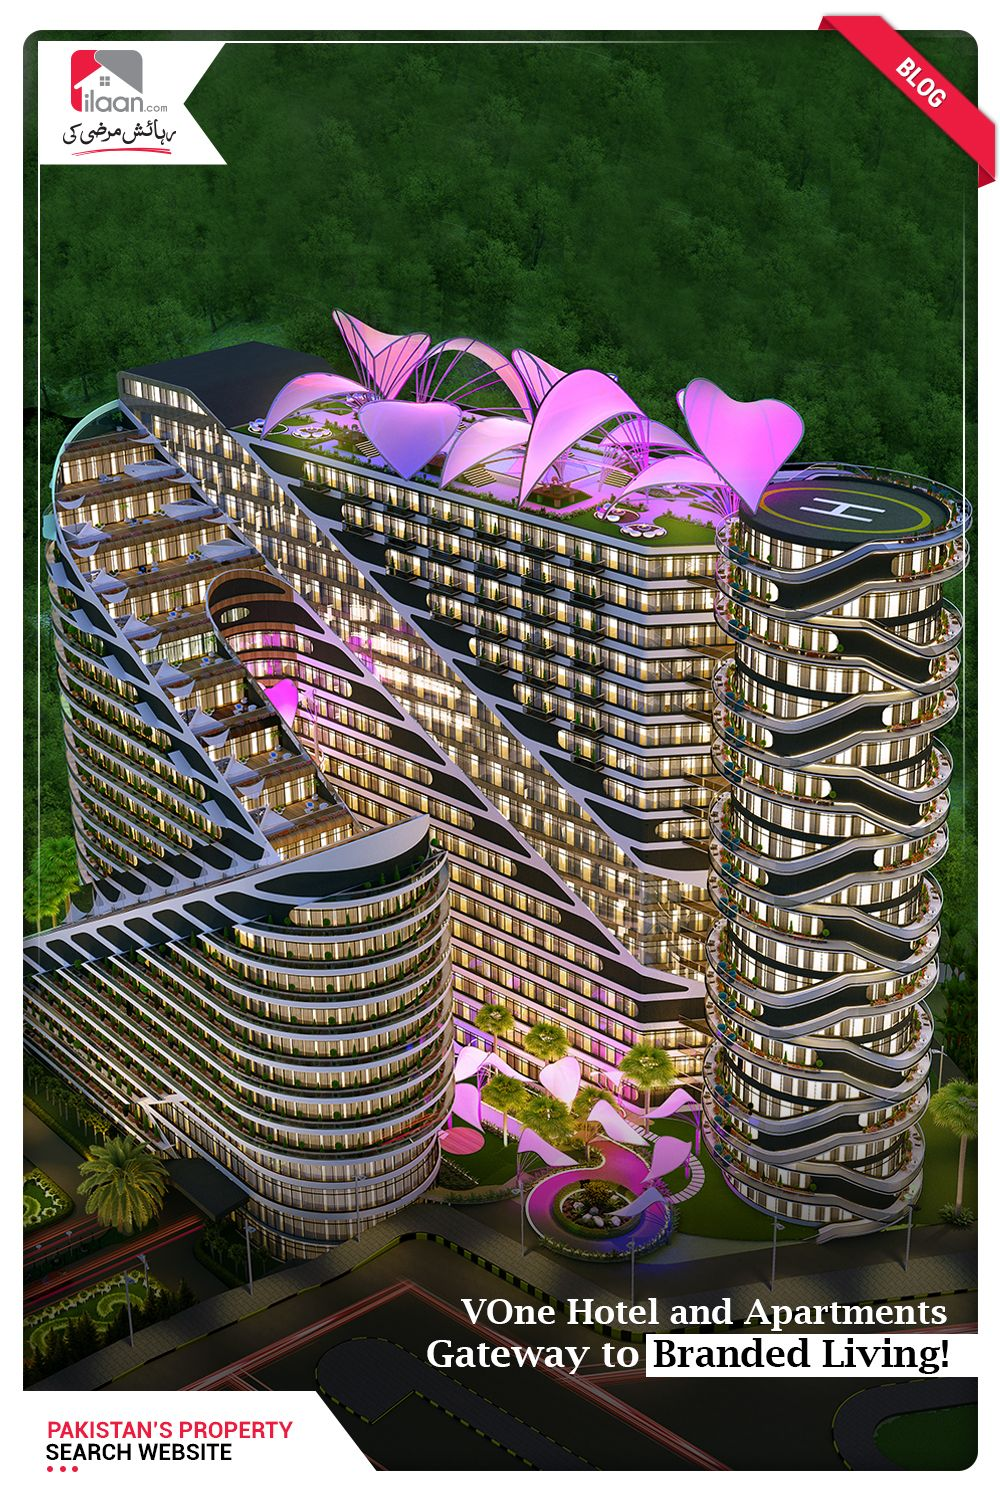 Vone Hotel And Apartments Gateway To Branded Living Hotel Brand Luxury Apartments